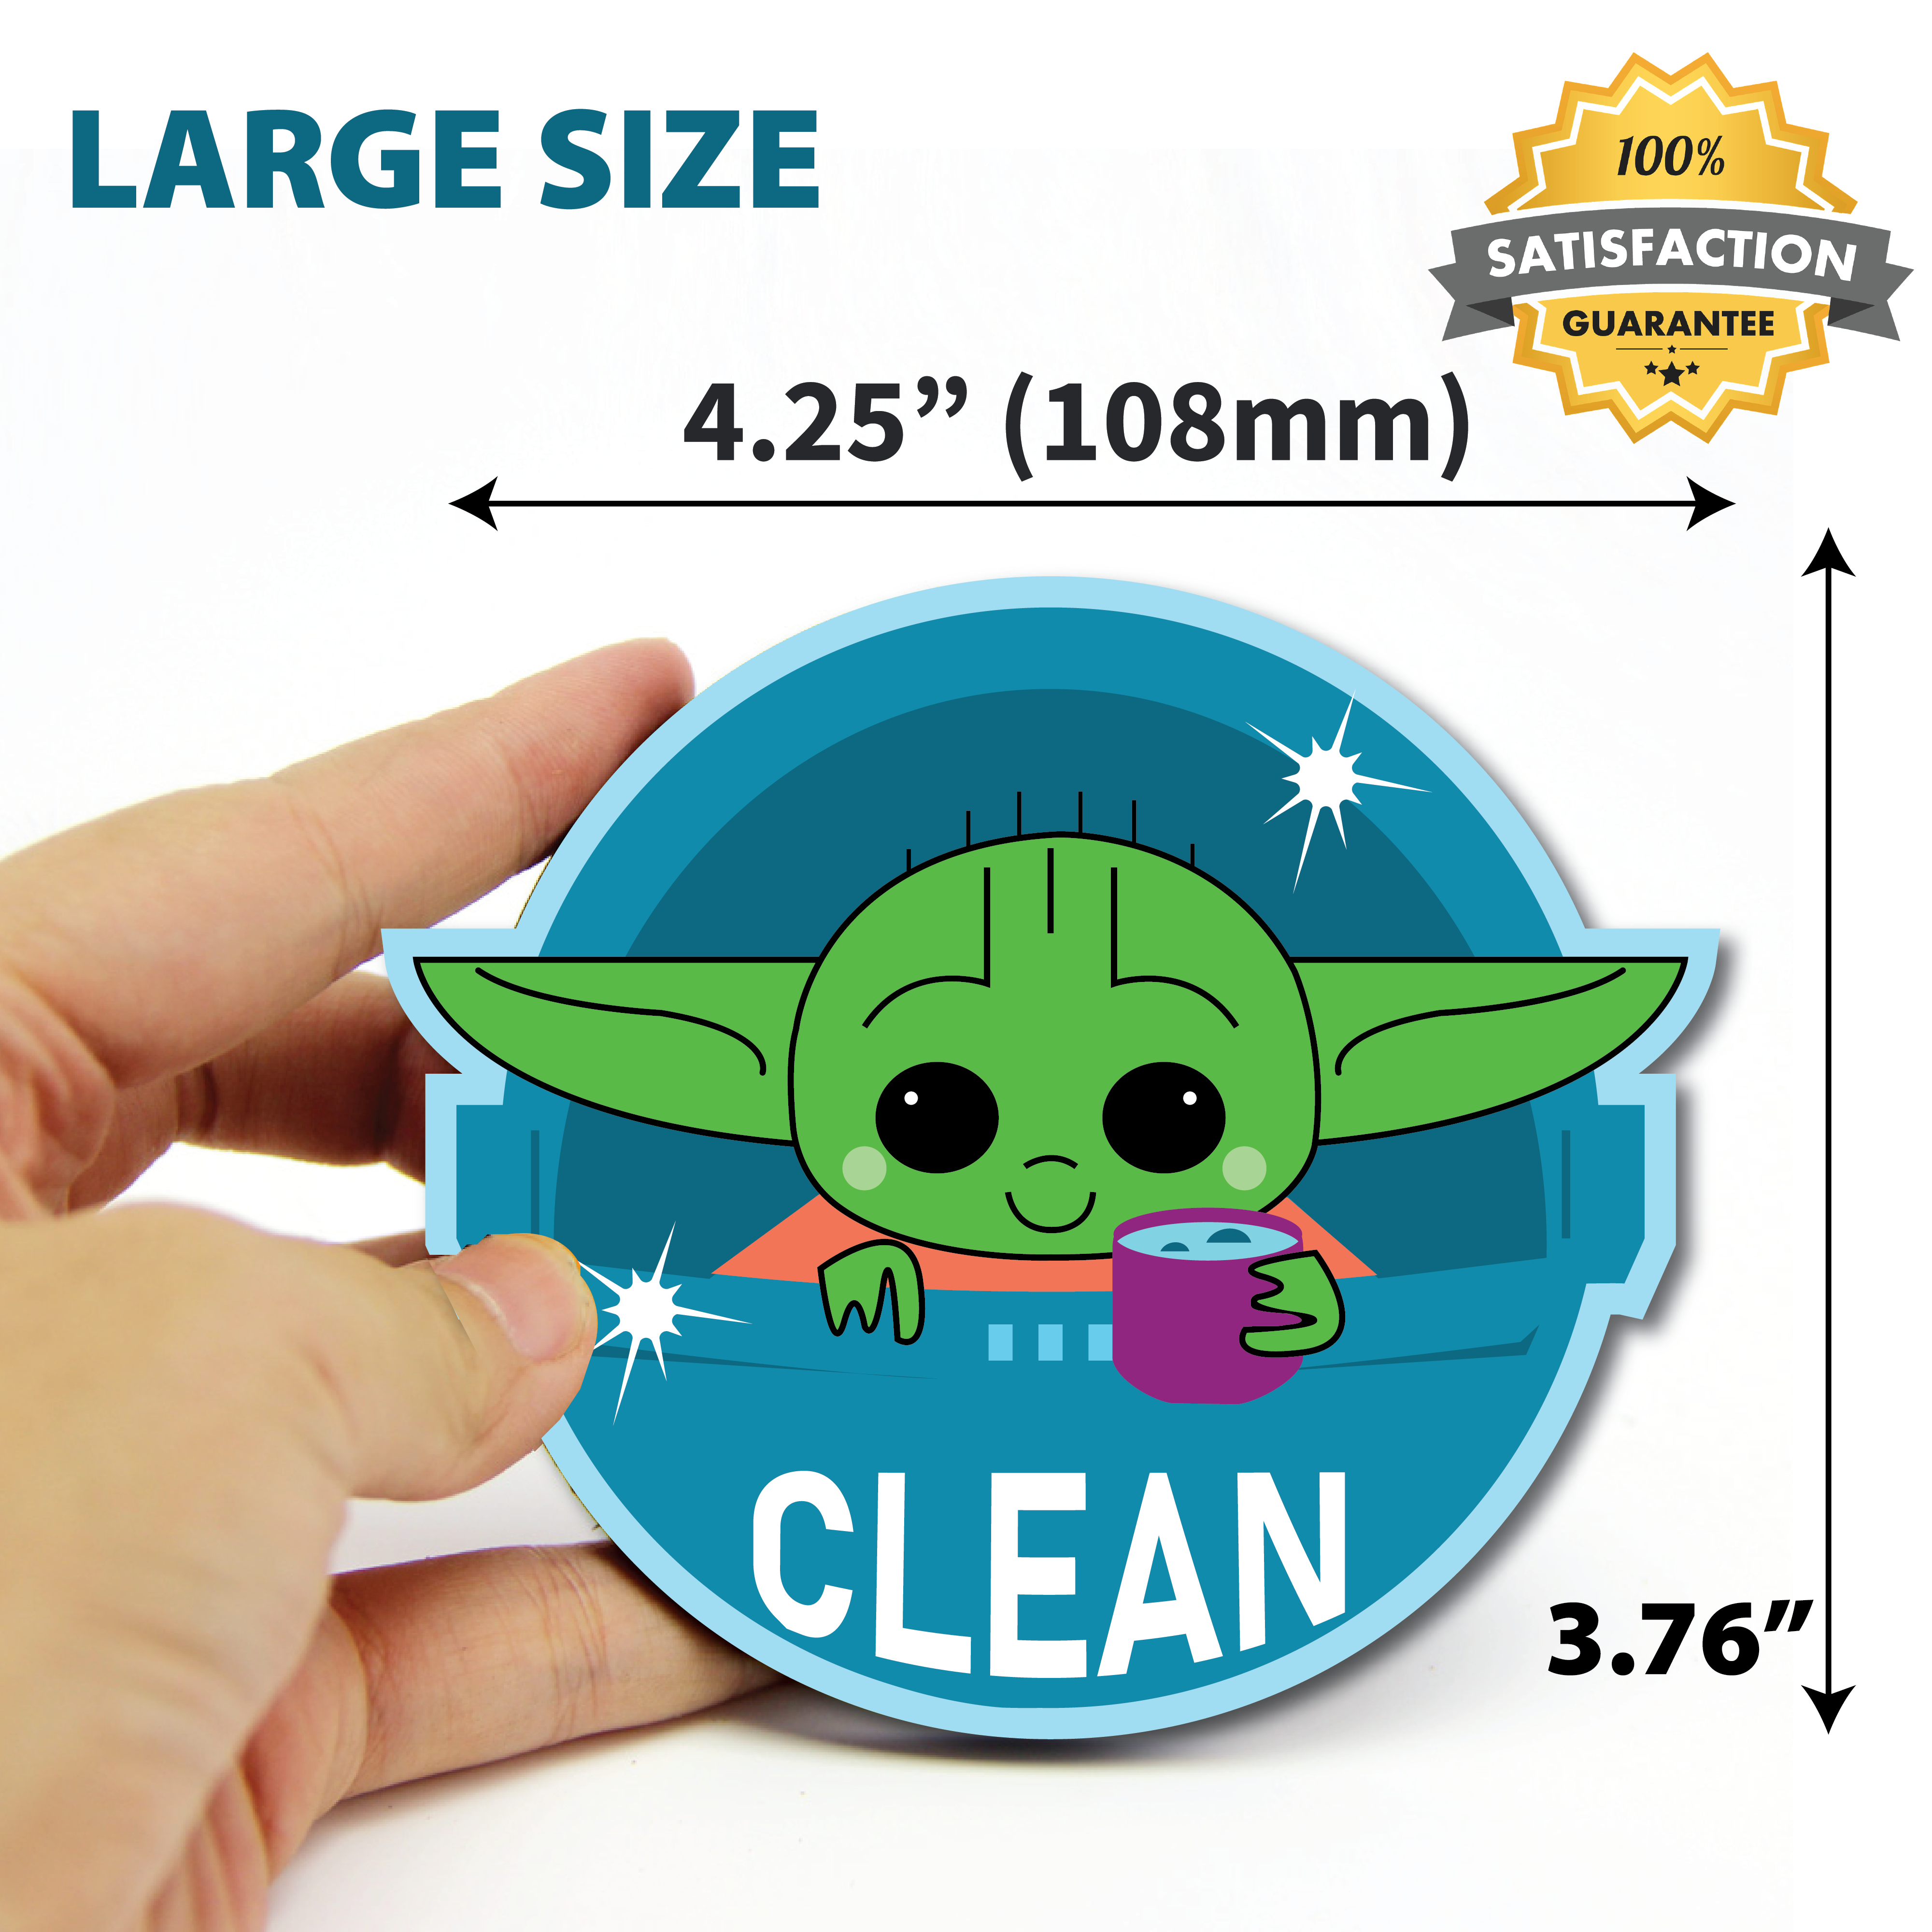 Baby yoda Sticker Magnet pc fridge ps area 51 magnets shop 2 FREE STICKERS